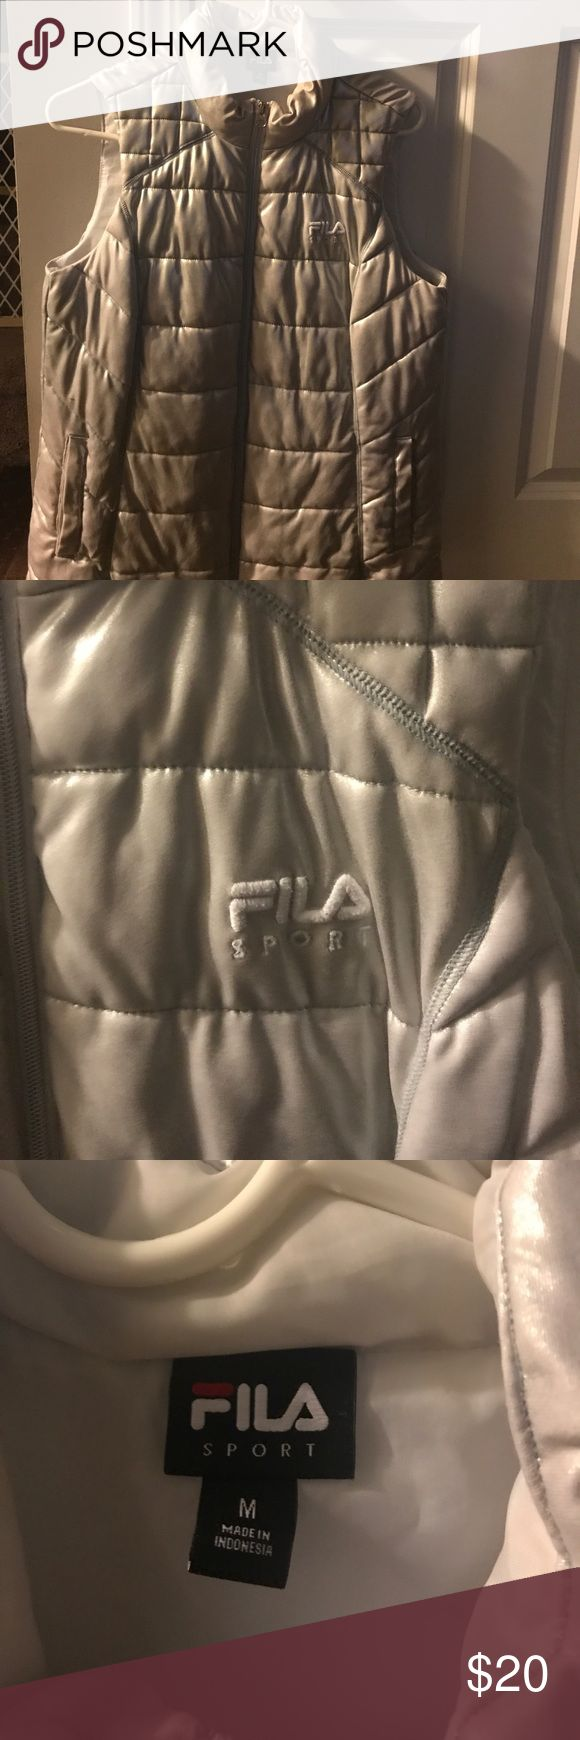 Fila Sport Vest Silver Fila Vest! Puffy and shiny 🙂 Very warm on cold days! Has two pockets . Zipper works perfectly . One owner from no smoking home. Fila logo stitched on left side of Vest. Fila Jackets & Coats Vests